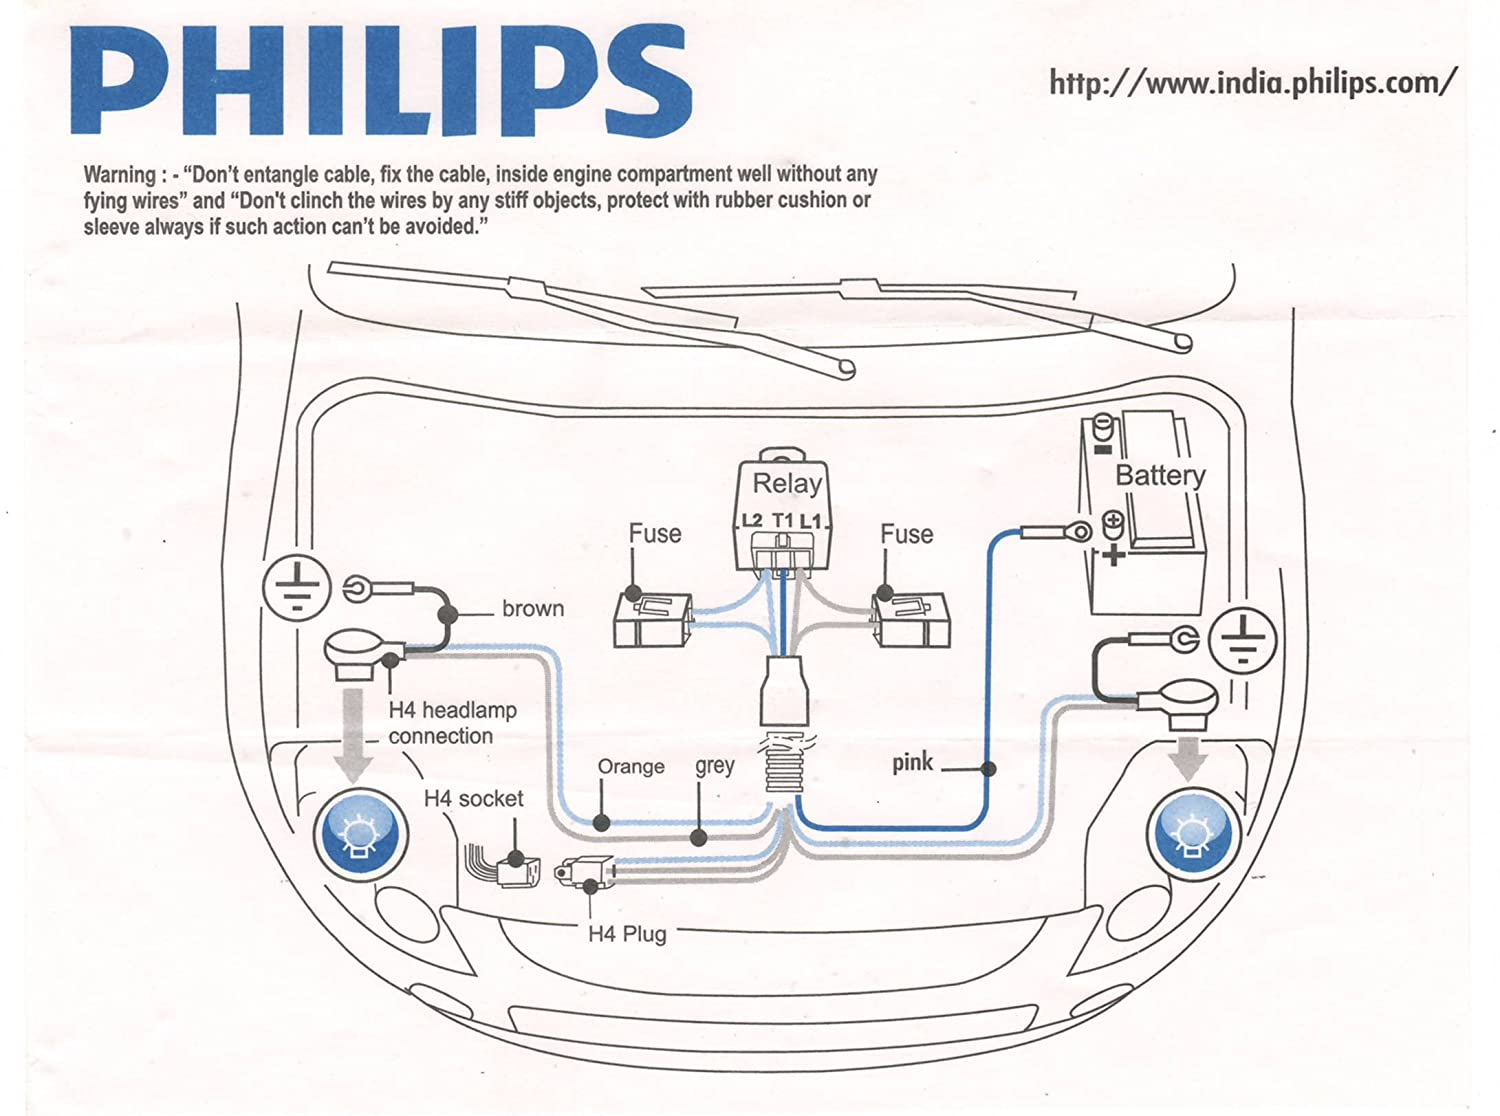 Santro Complete Wiring Diagram Bookcomplete Hyundai I10 Sl1500 Philips 12003xm H4 Heavy Duty Relay Kit For High Power At Cita